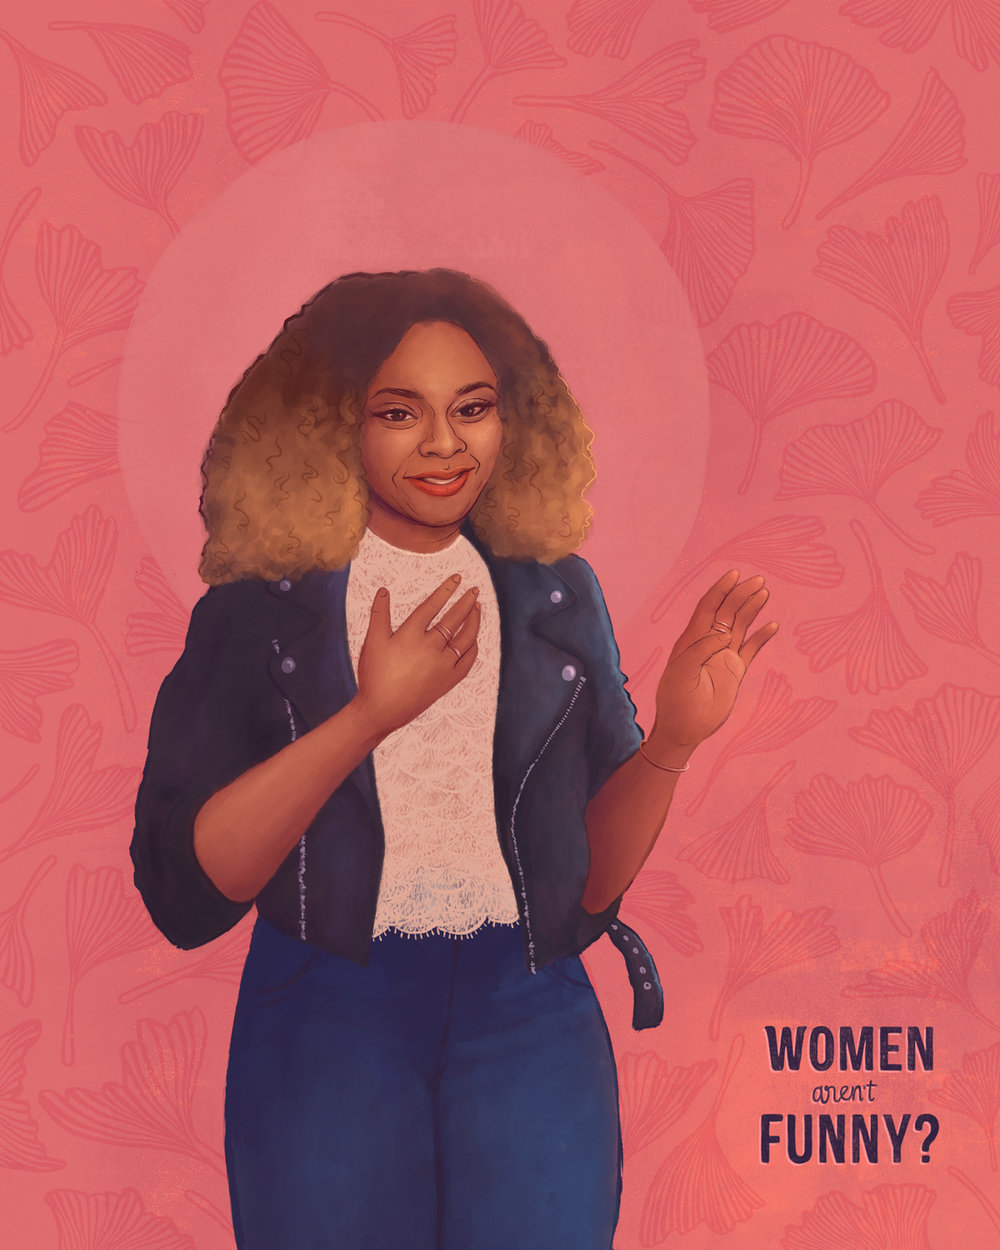 My illustration of Stand up comic Phoebe Robinson (2018)